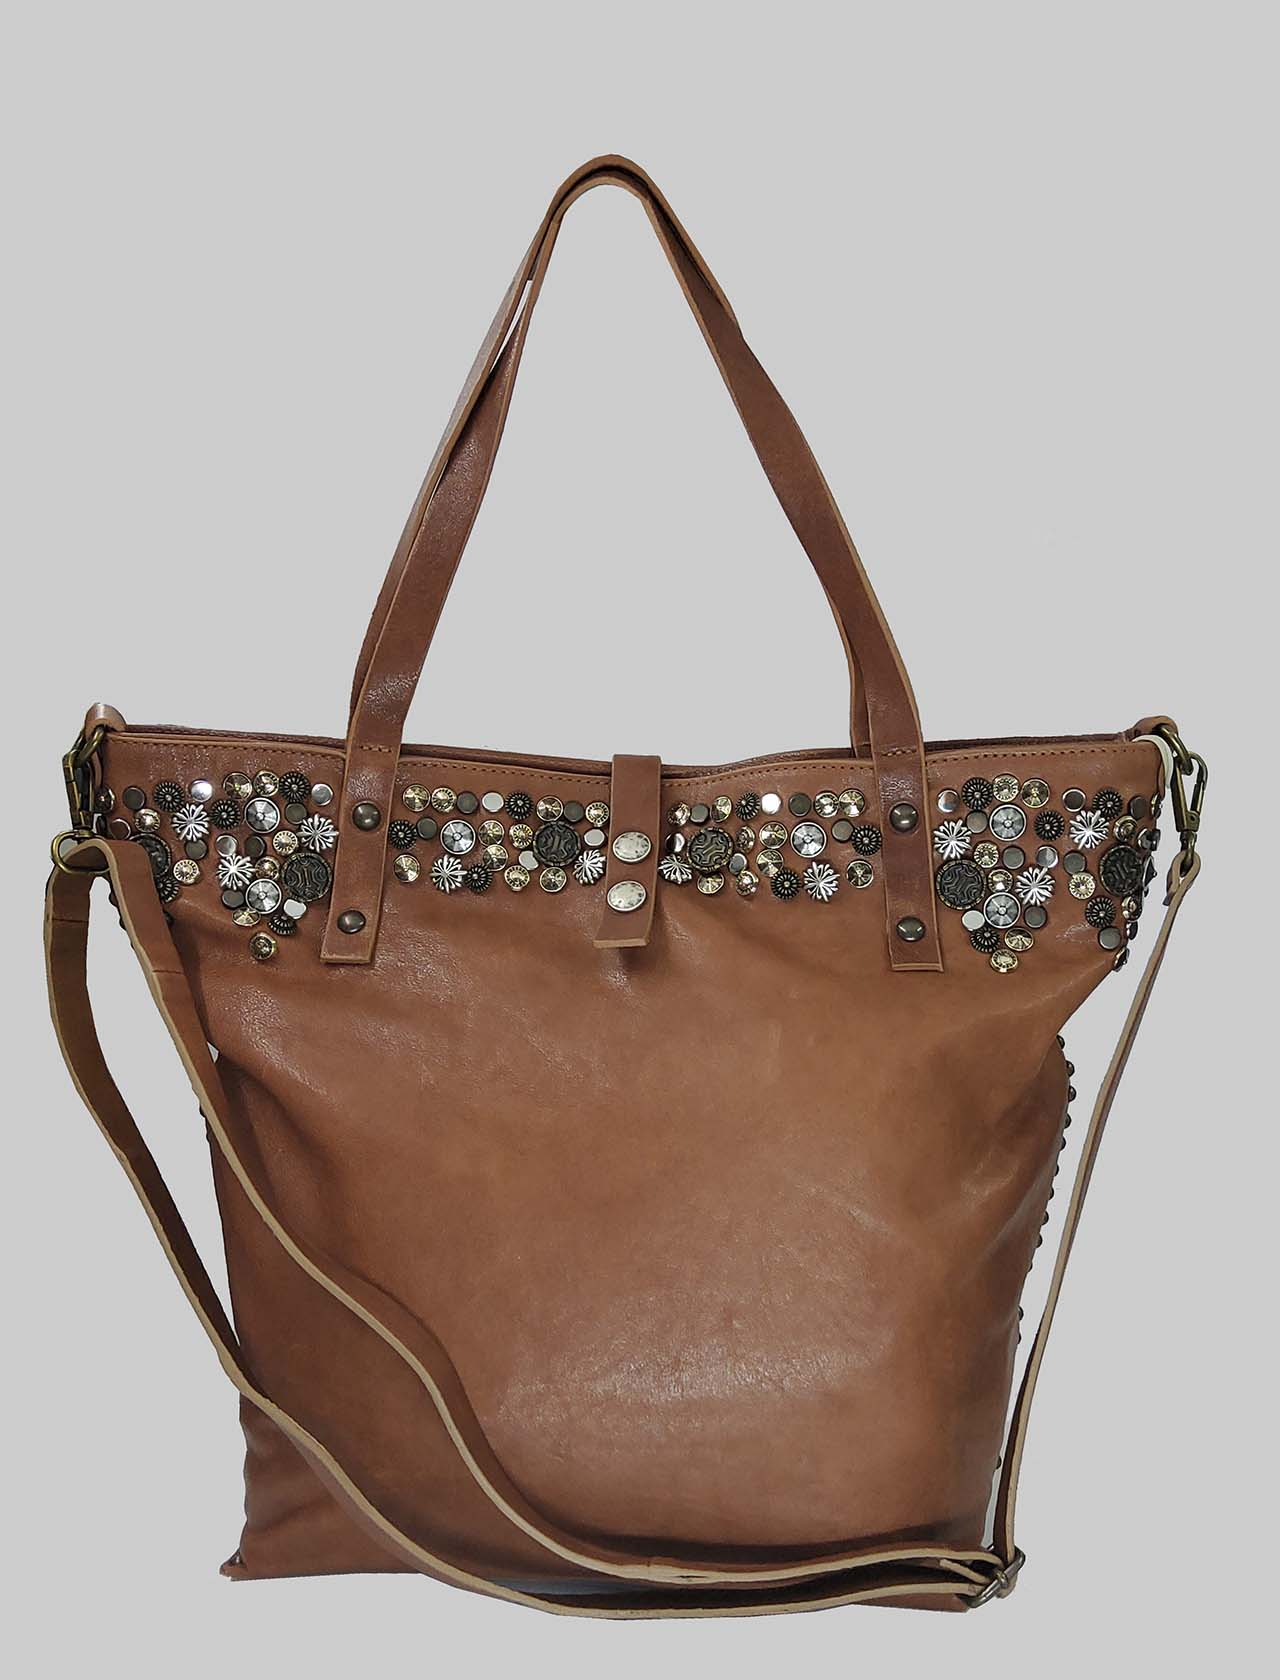 Woman Shopping Bag in Dark Brown Leather with Studs and Adjustable Leather Shoulder Strap Spatarella | Bags and backpacks | INES014